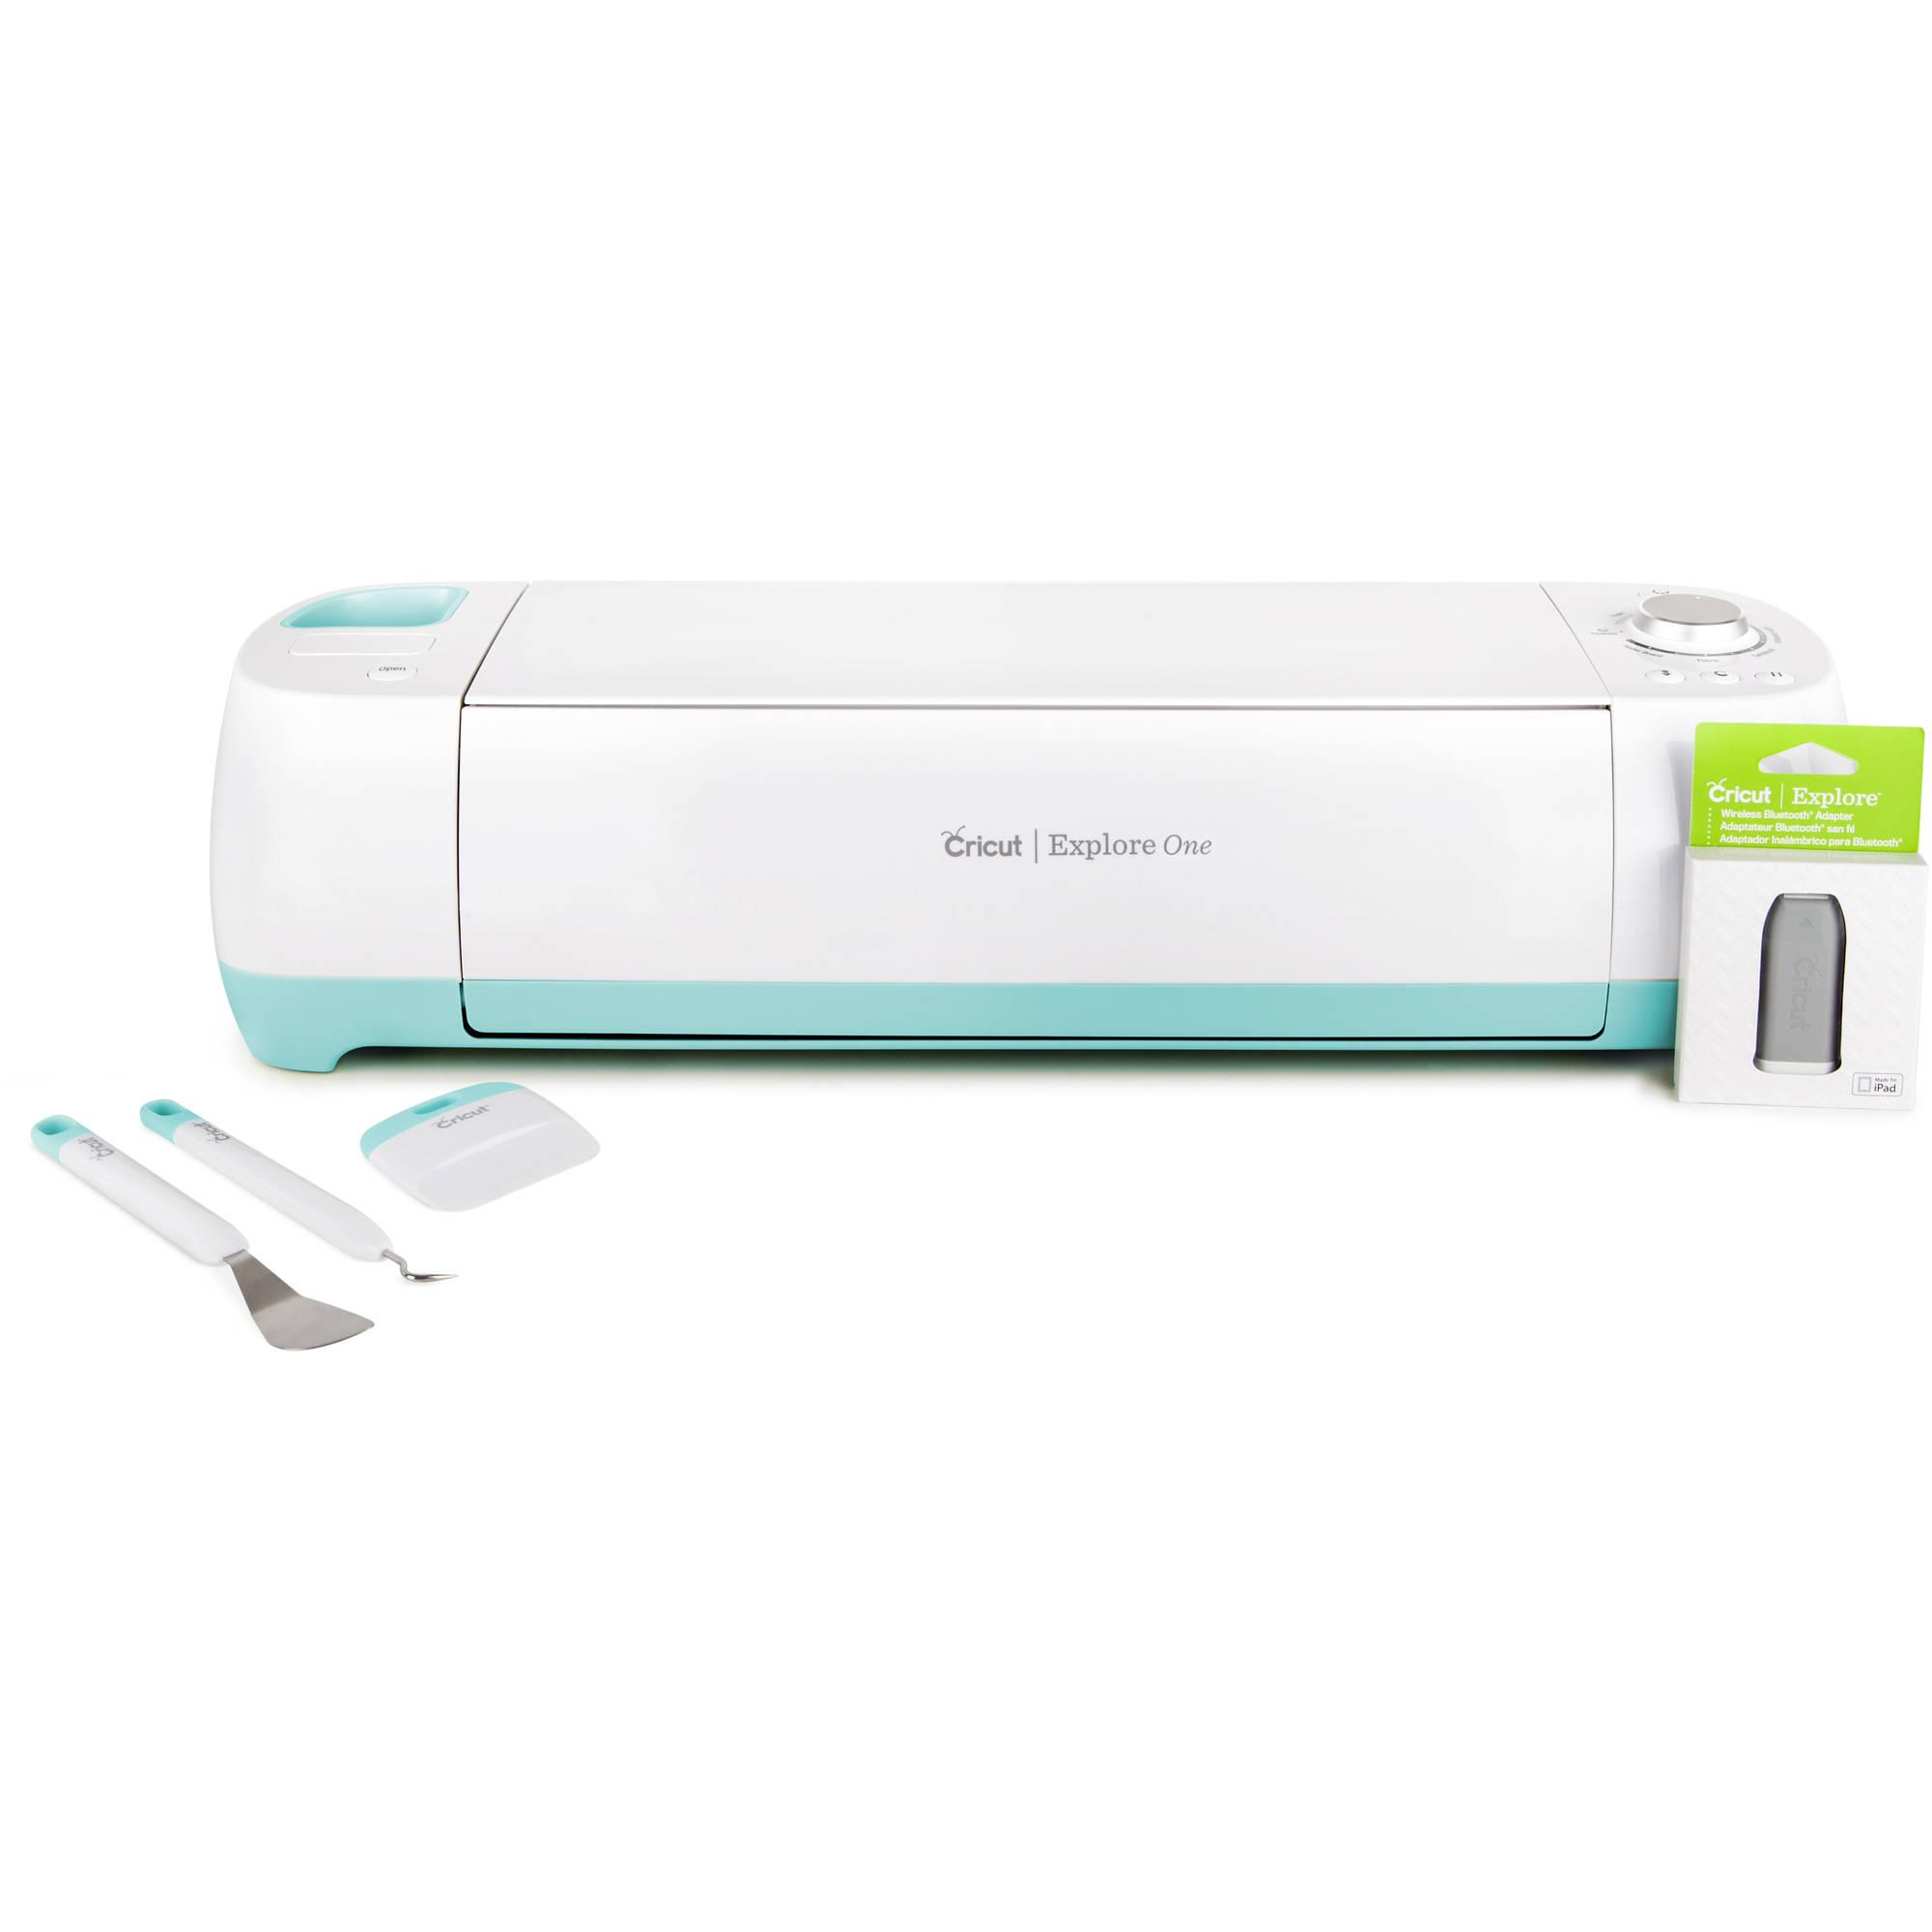 32% Off Cricut Explore One Special Edition Bluetooth Bundle